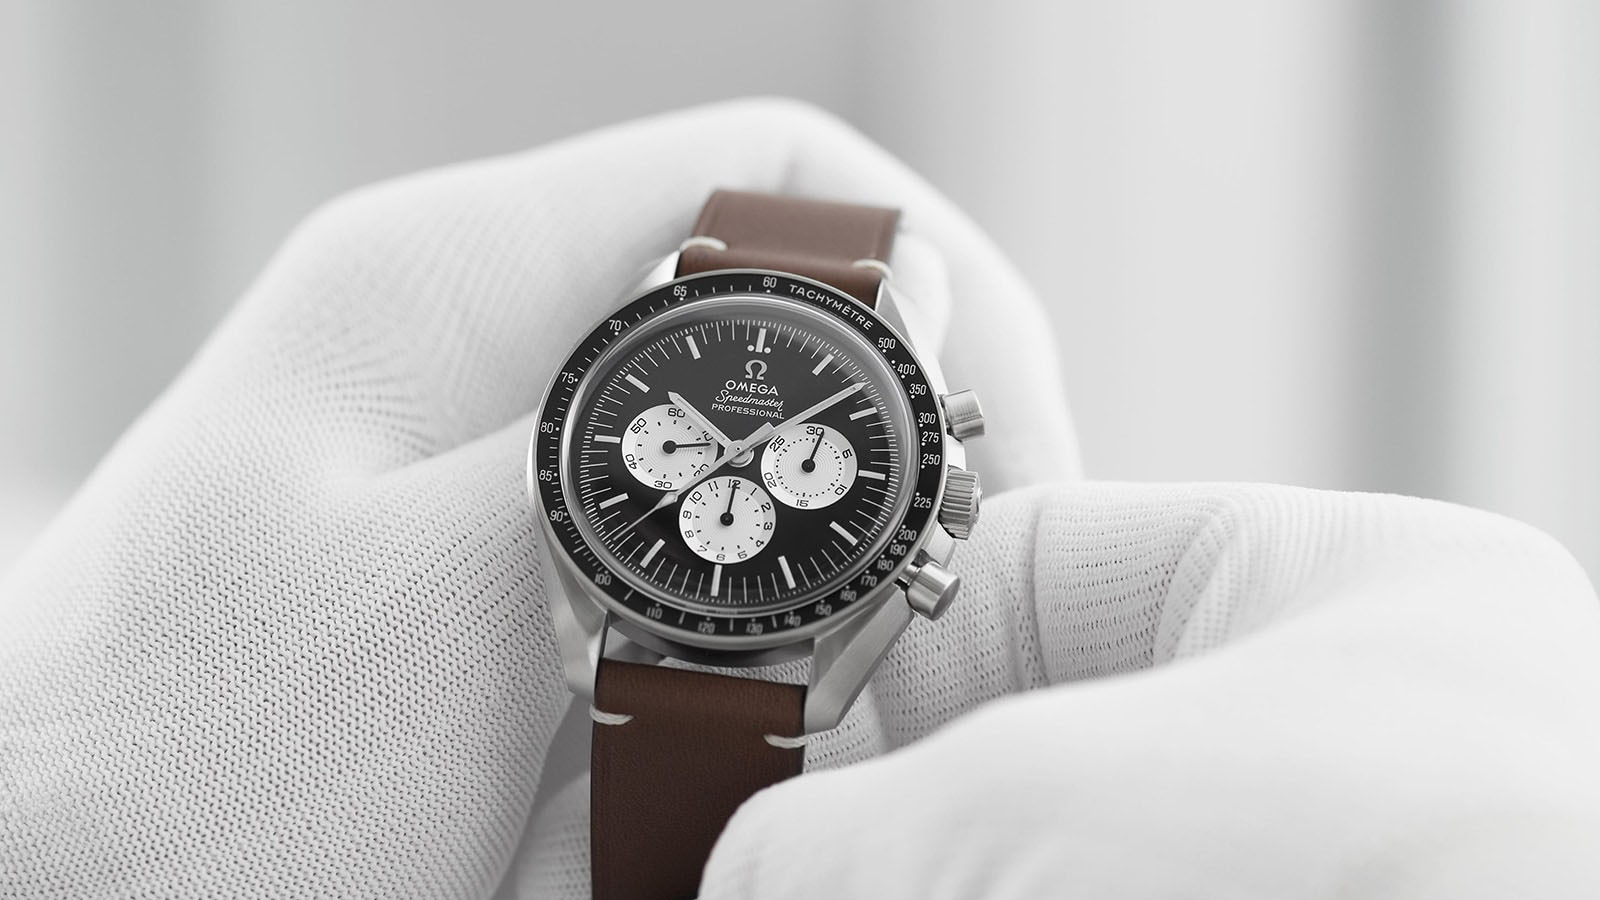 """The first """"speedy tuesday"""" leaves the factory - Single - 54925"""